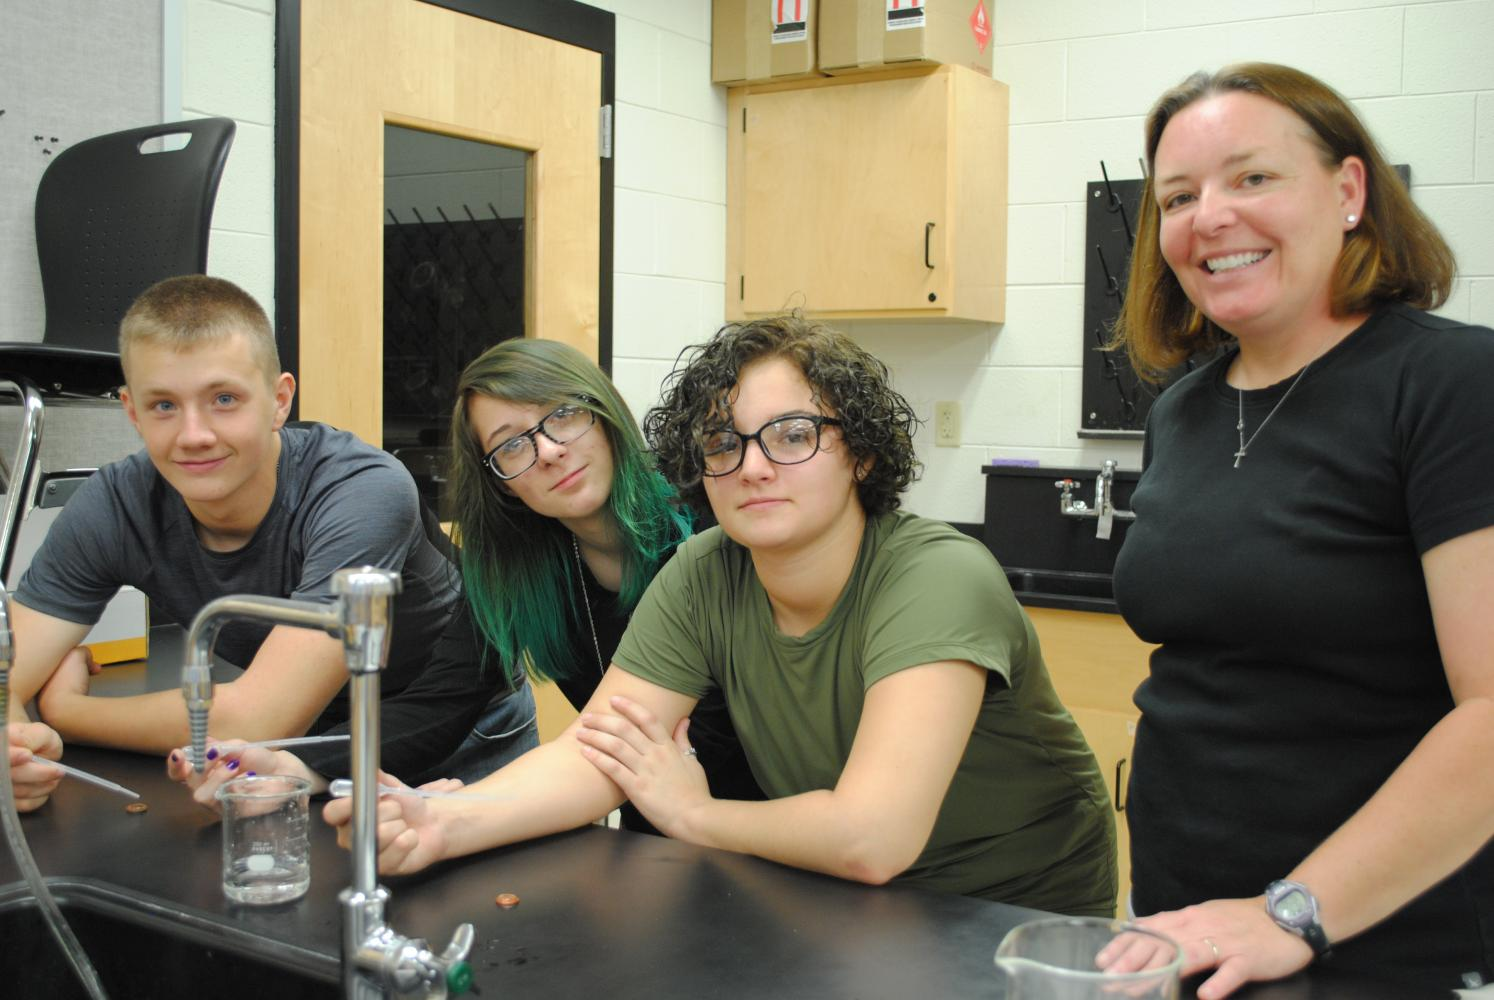 Shaun Warren, Lindsey Fields and Malia Williams were among the participants in a science project led by Harlan County High School teacher Jennifer Hilton.